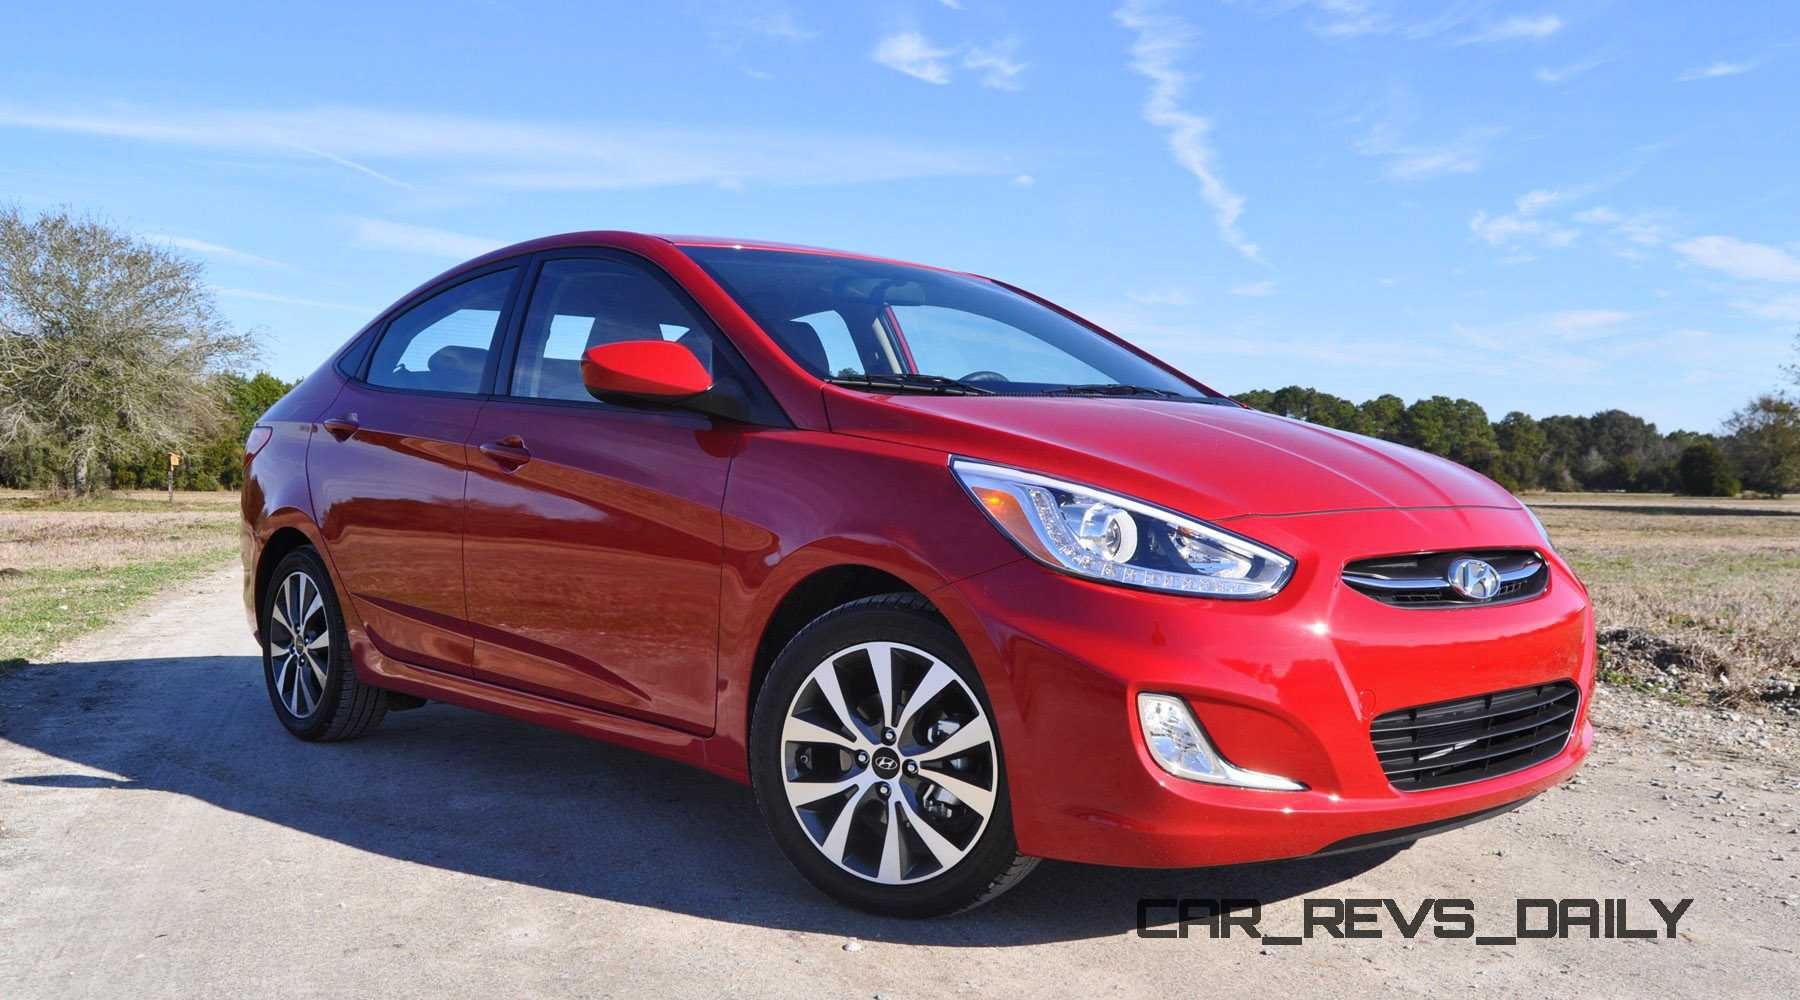 2015 Hyundai Accent Gls Sedan Review